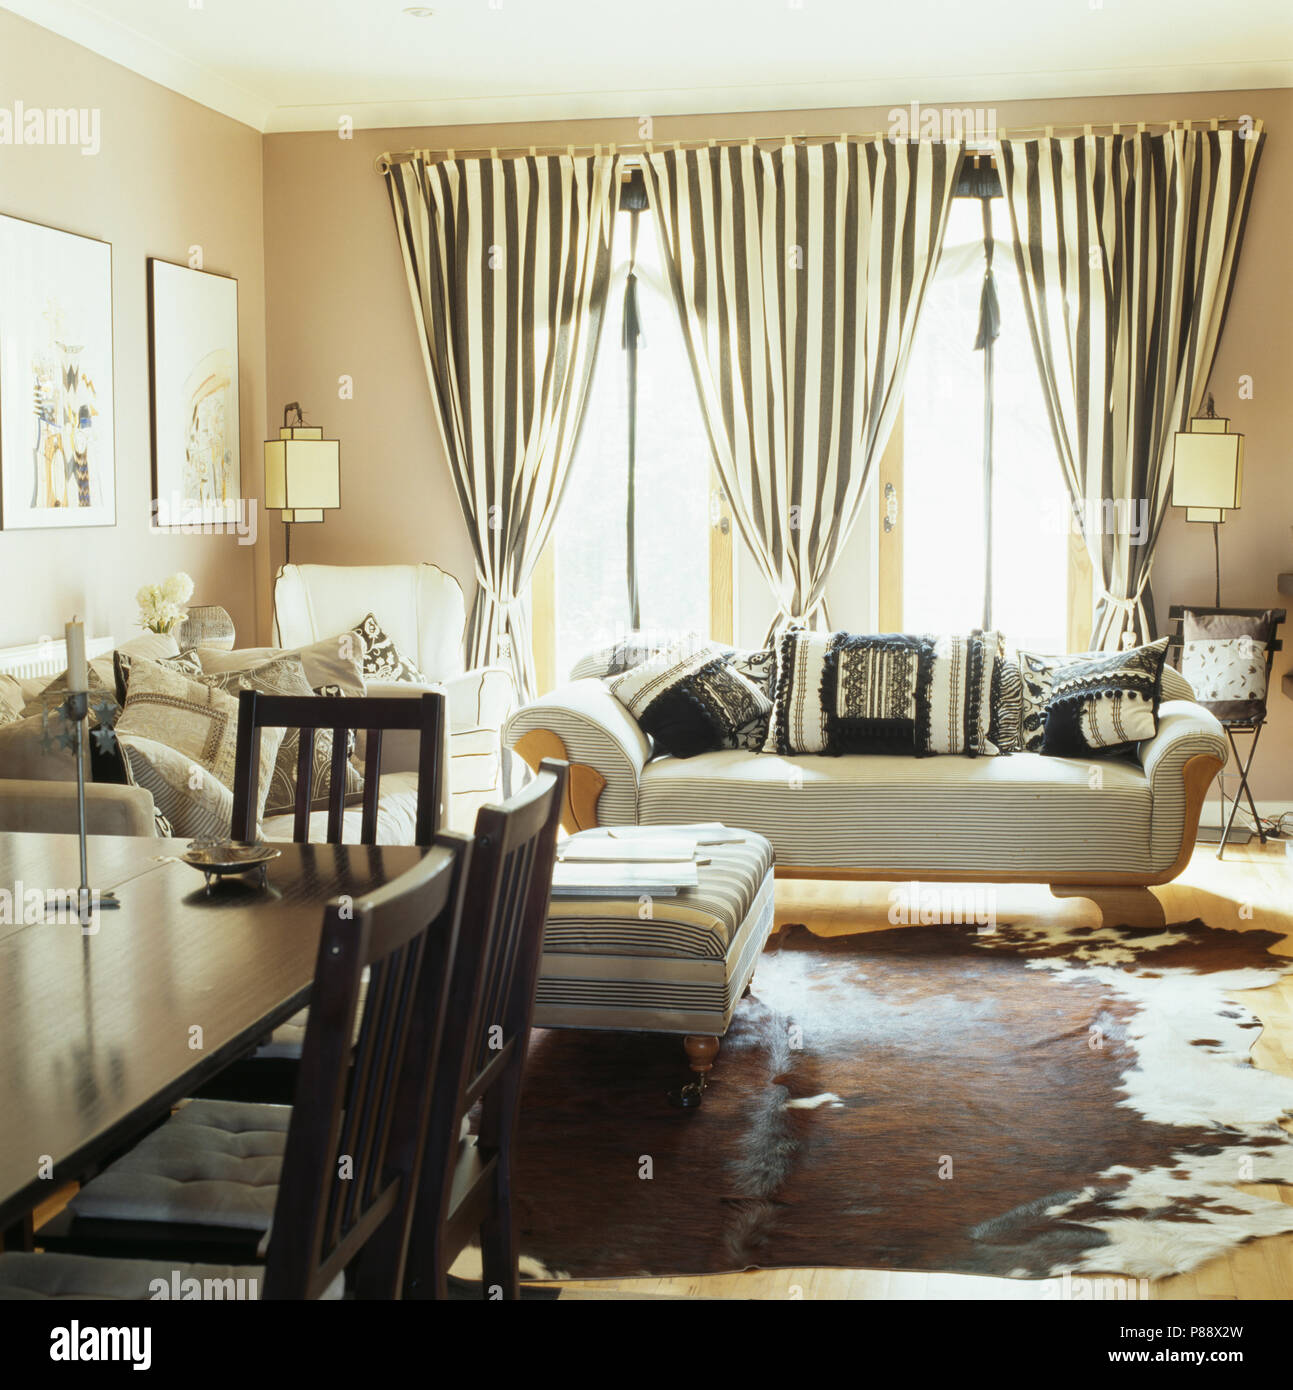 Black White Striped Curtains On Windows Behind Sofa In Living And Dining Room With Animal Skin Rug The Floor